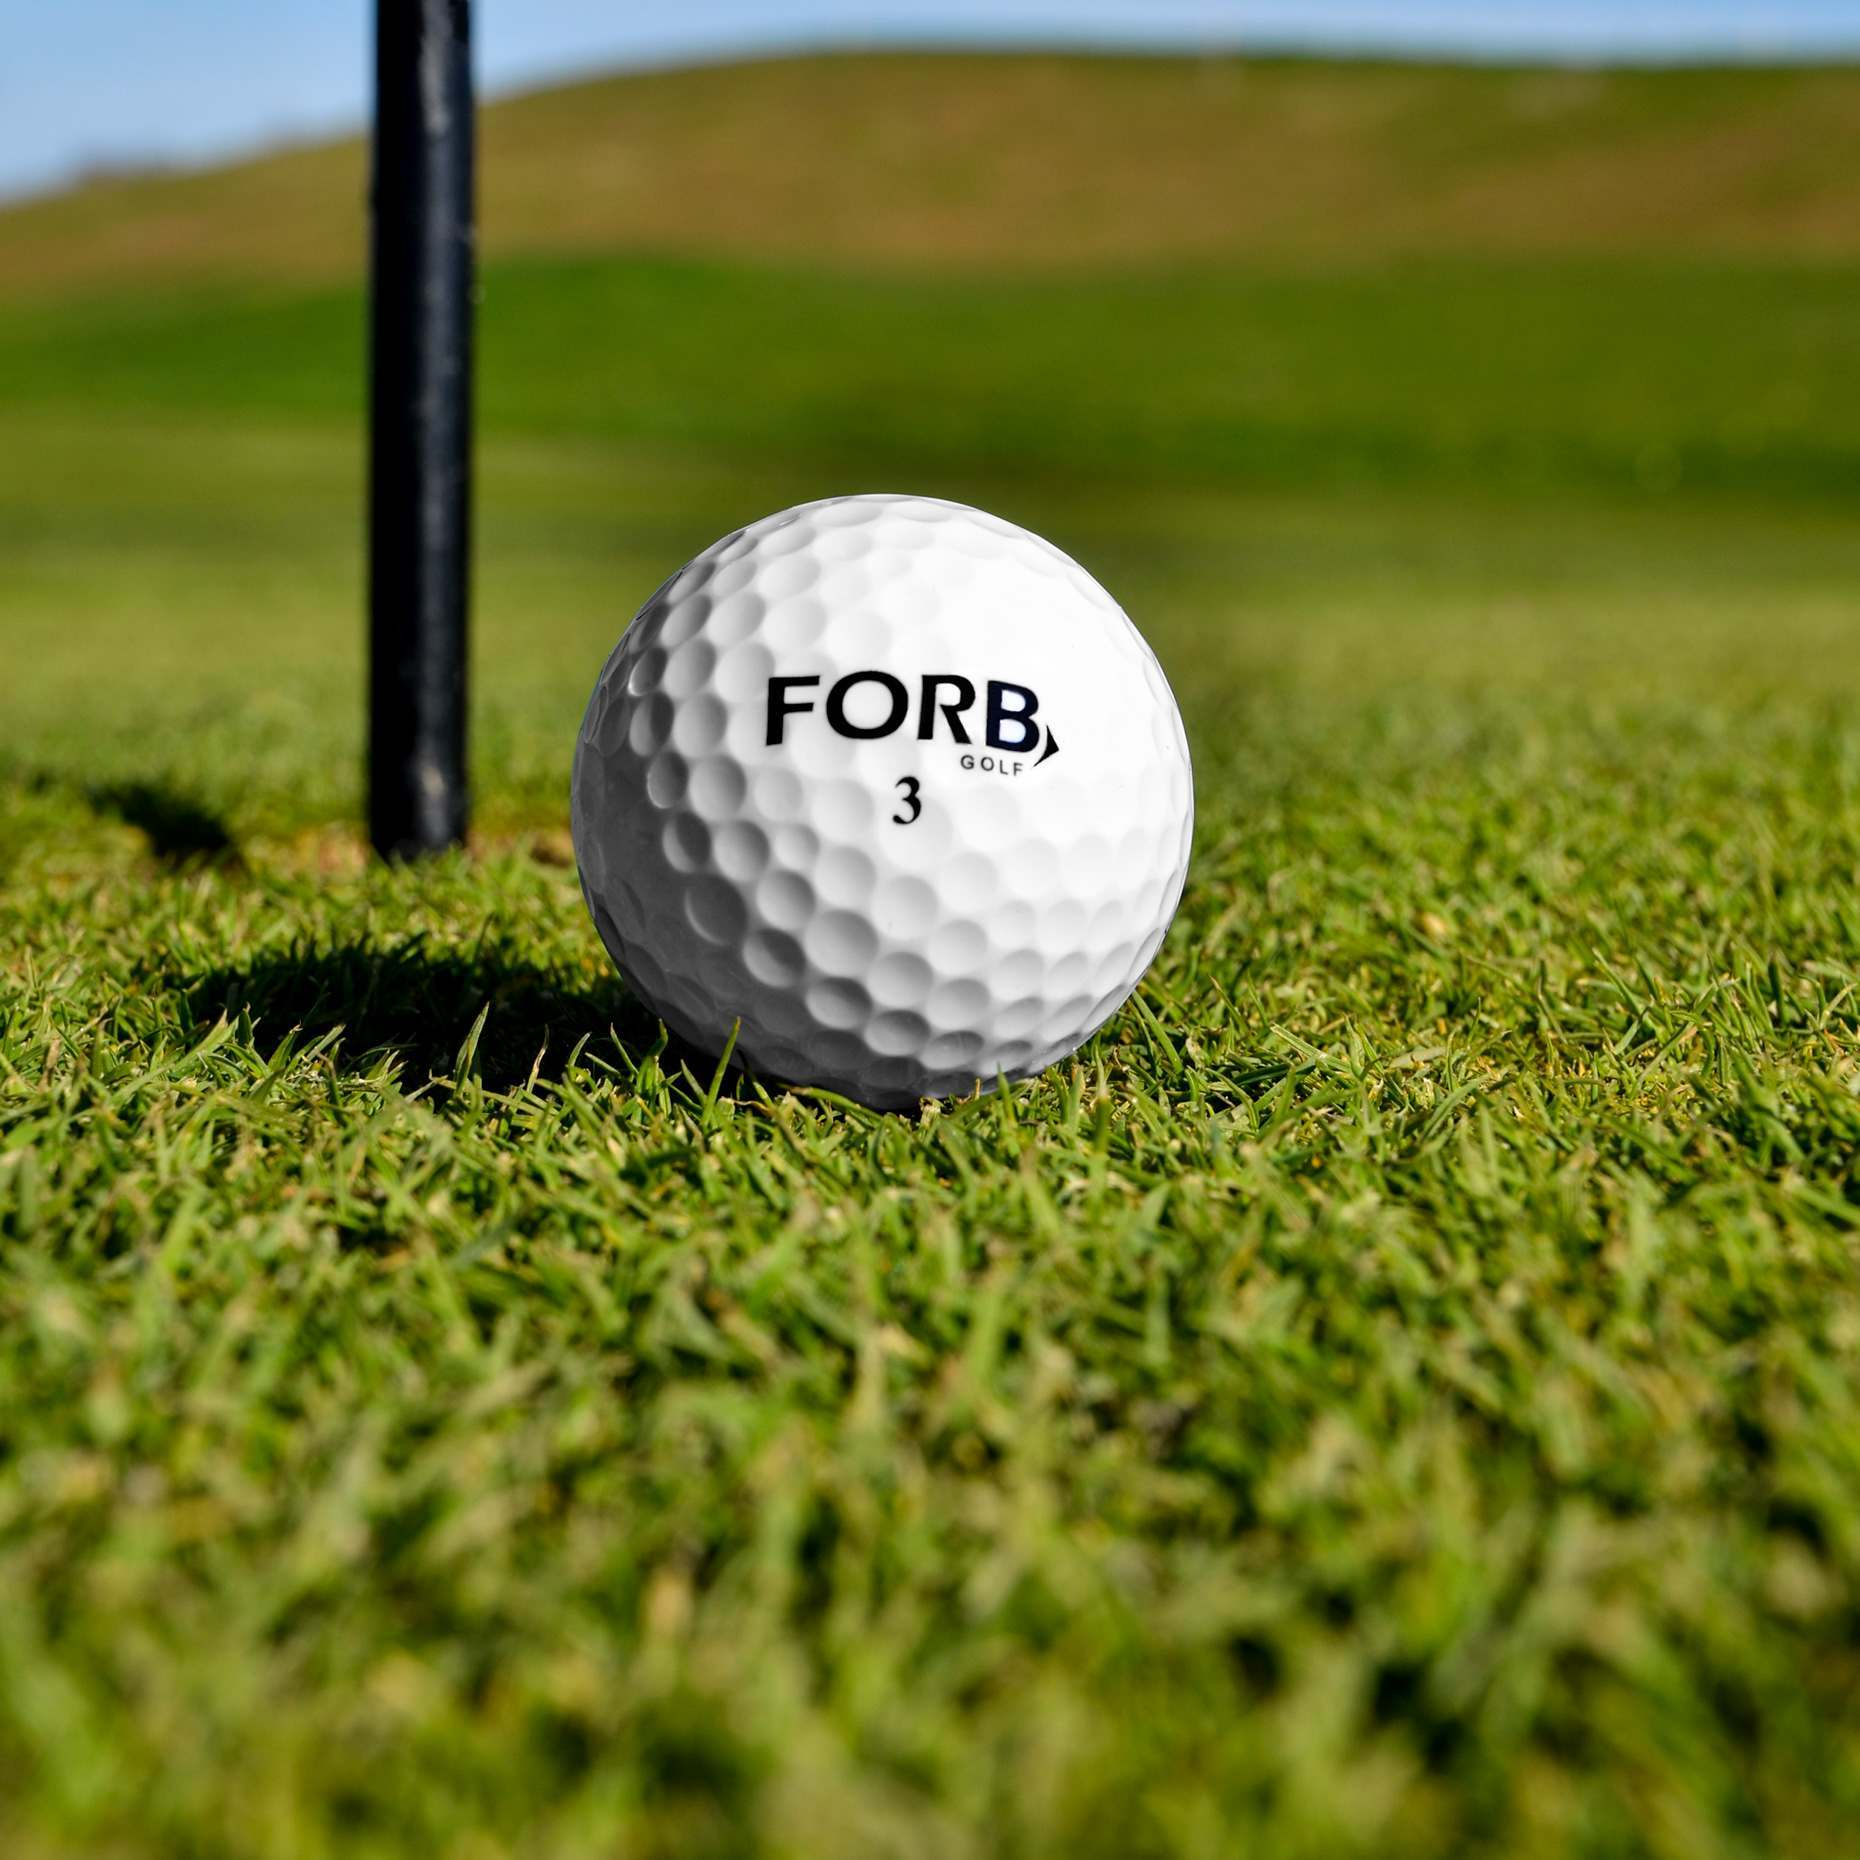 FORB F-5 Golf Balls [12 Pack] - Tour Quality Golf Balls Golf Balls